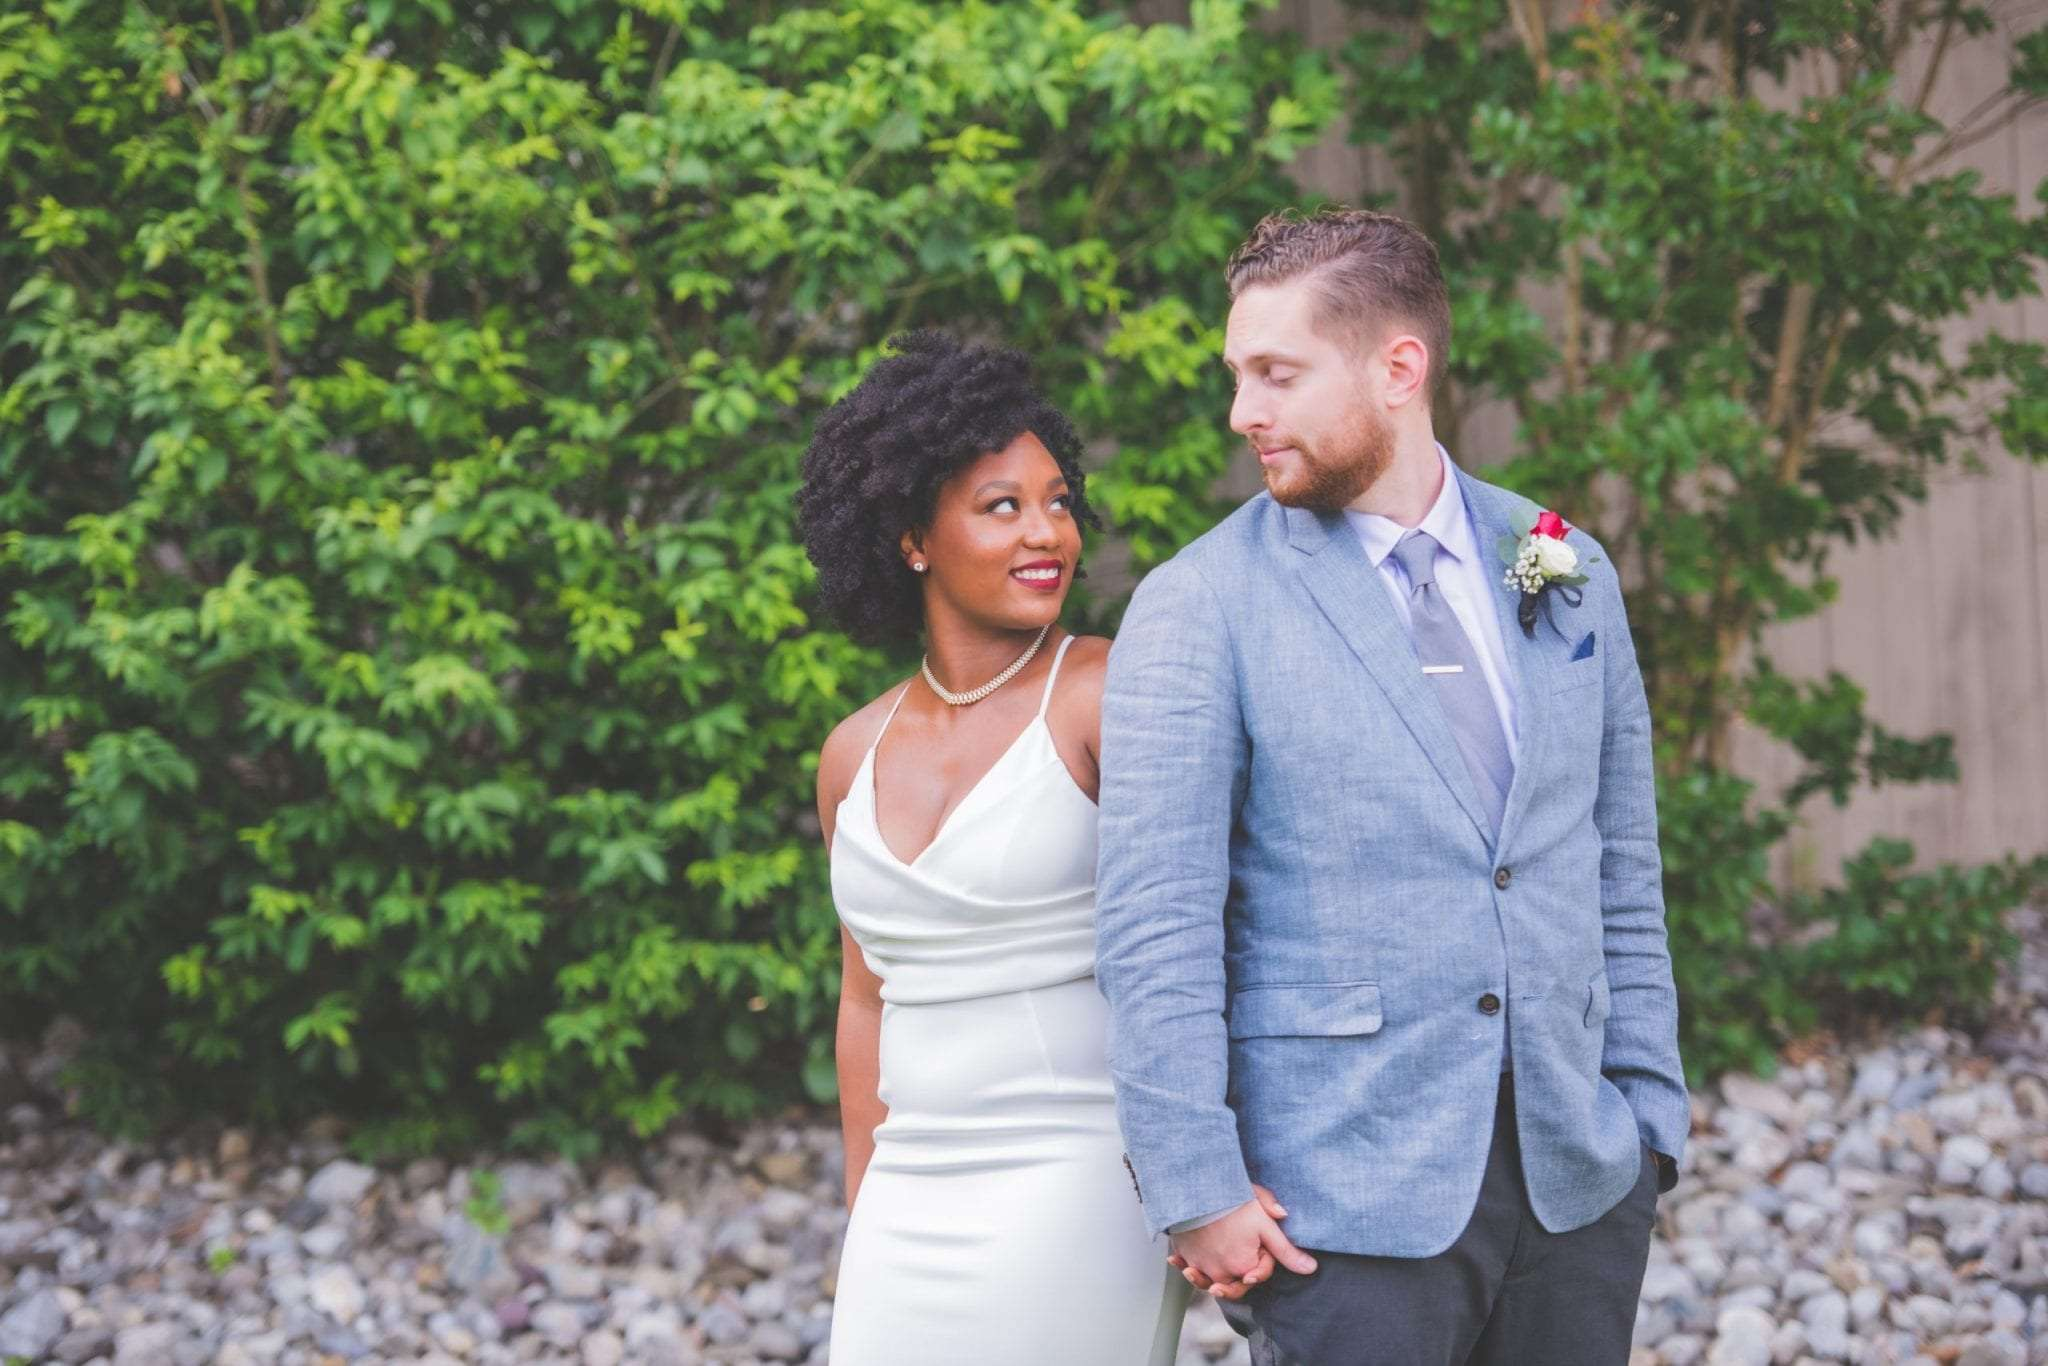 backyard wedding in NJ social distancing